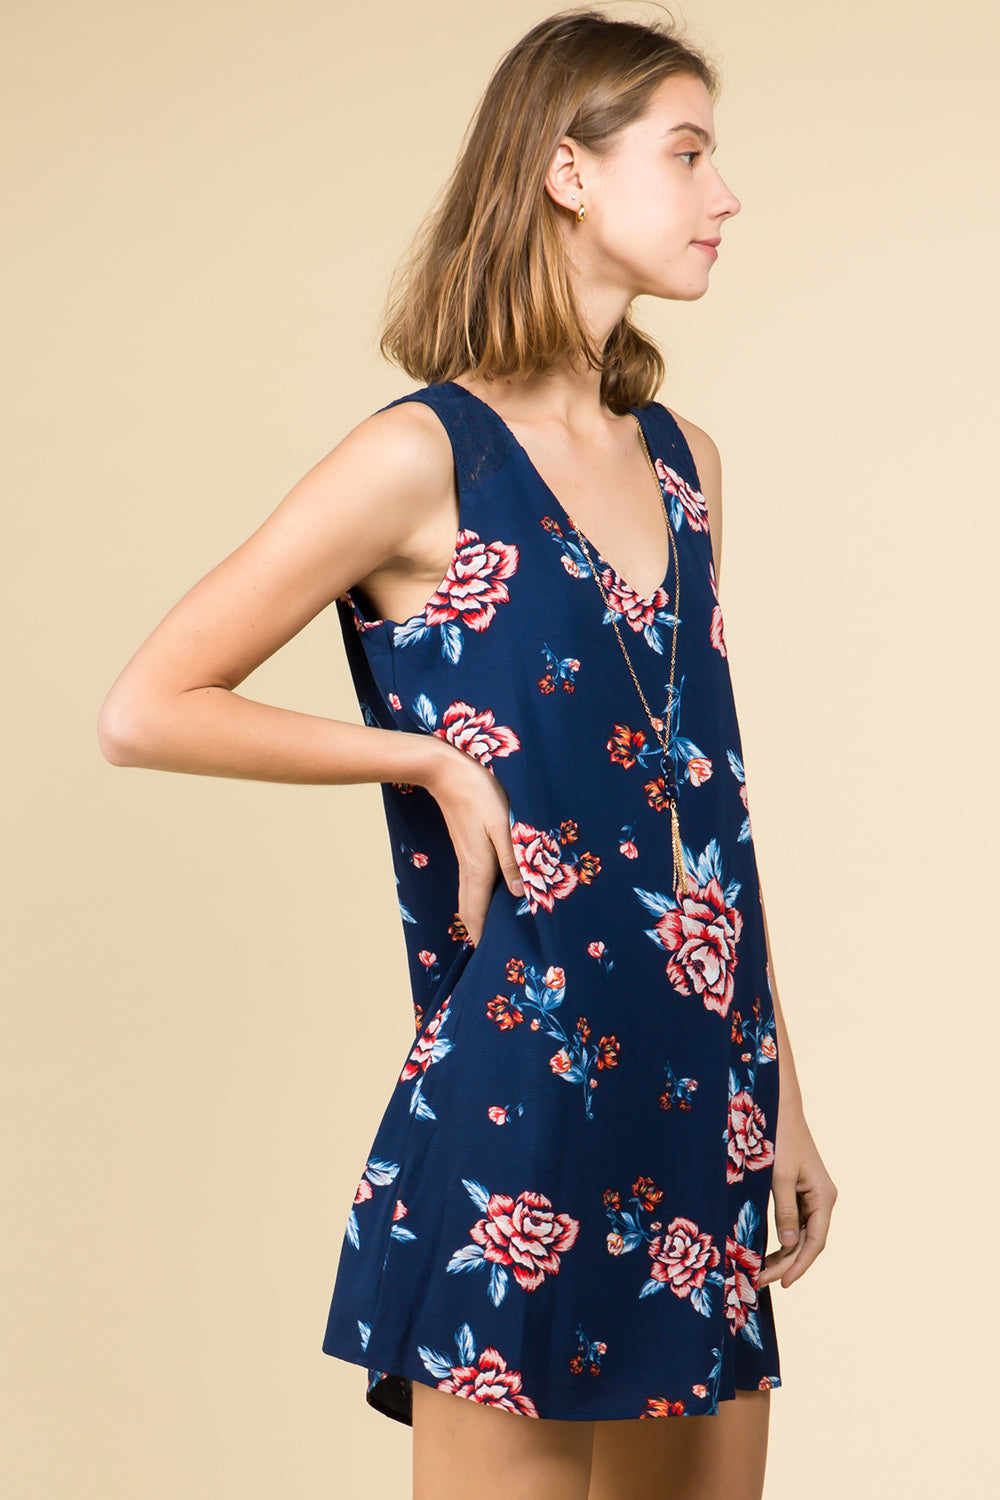 NAVY FLORAL V-NECK DRESS WITH NECKLACE